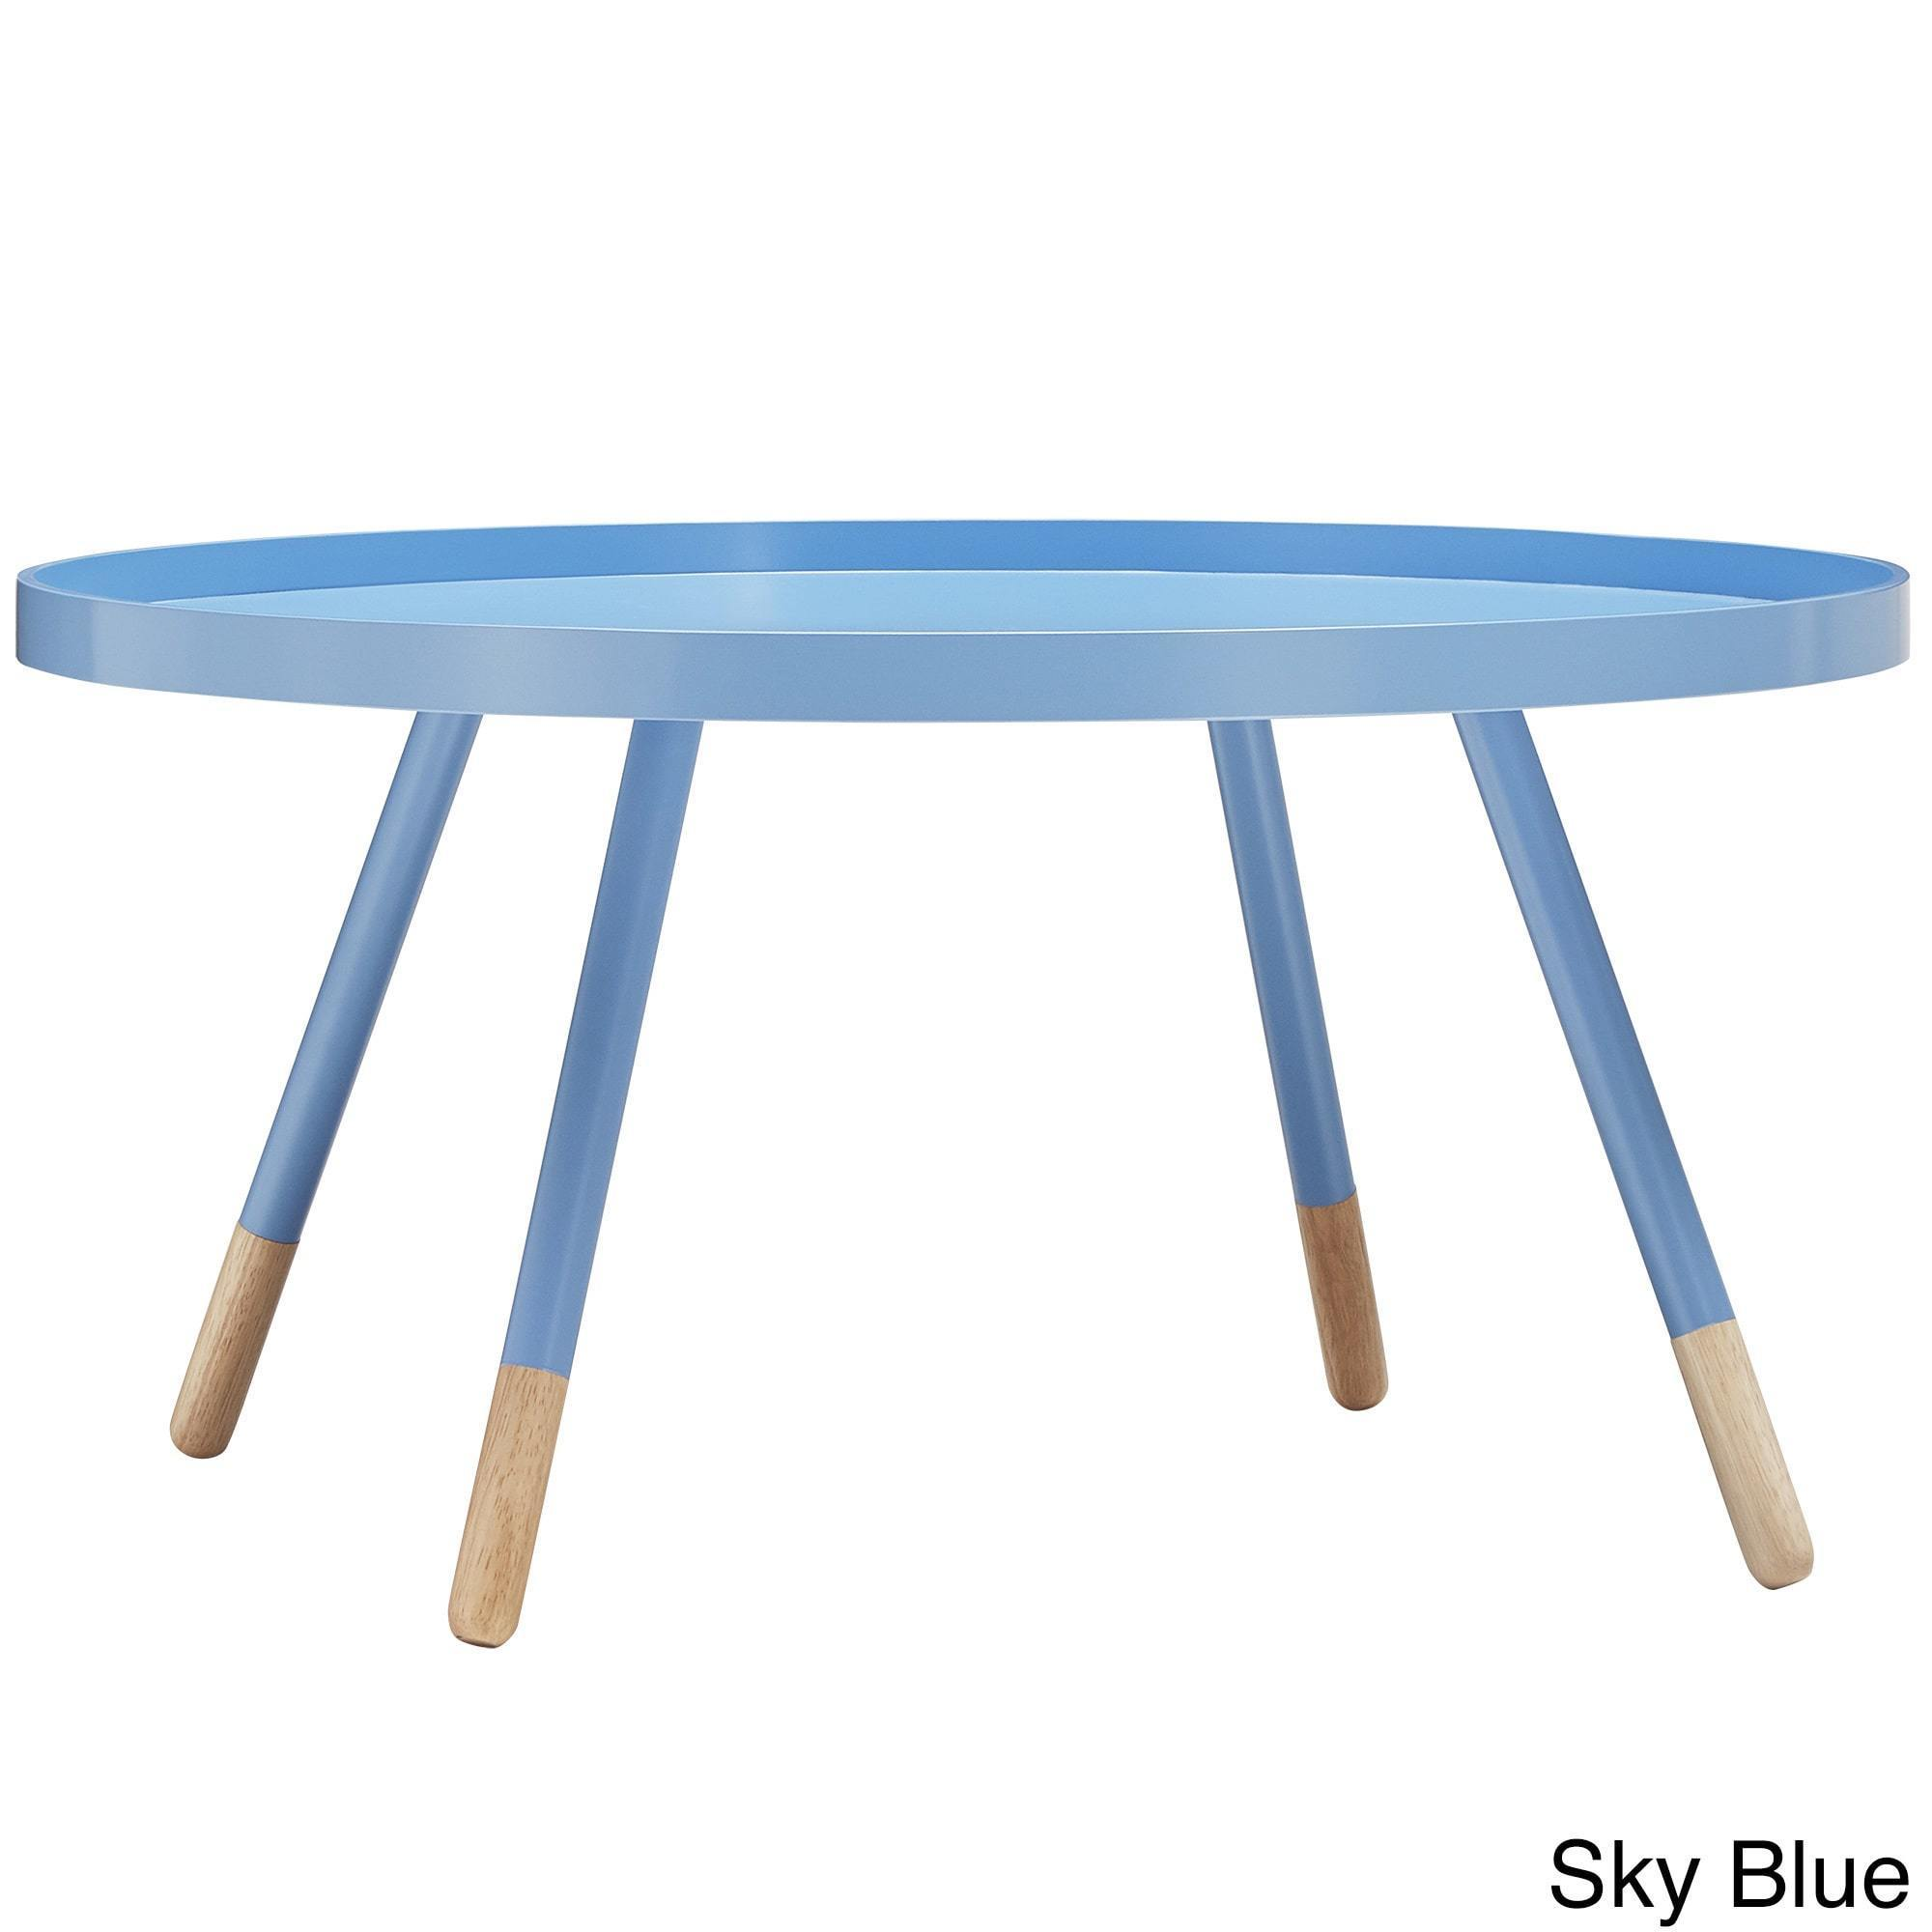 Coffee Table With Tray Top: Marcella Paint-dipped Round Spindle Tray Top Coffee Table